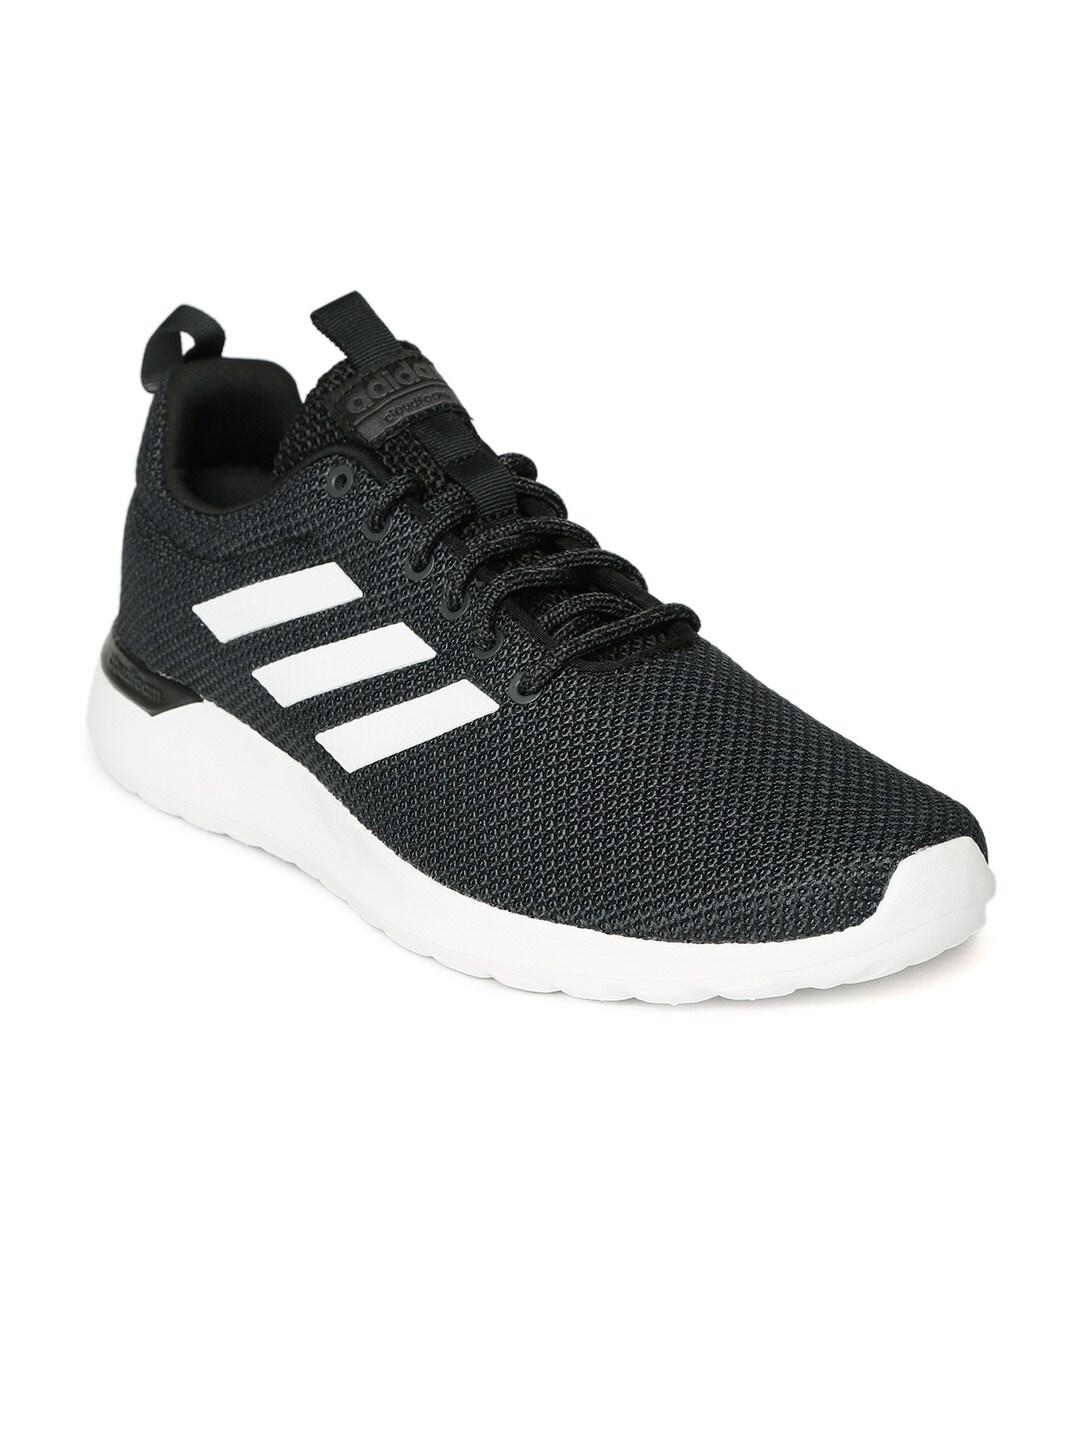 48bb1506f Adidas Racer - Buy Adidas Racer online in India